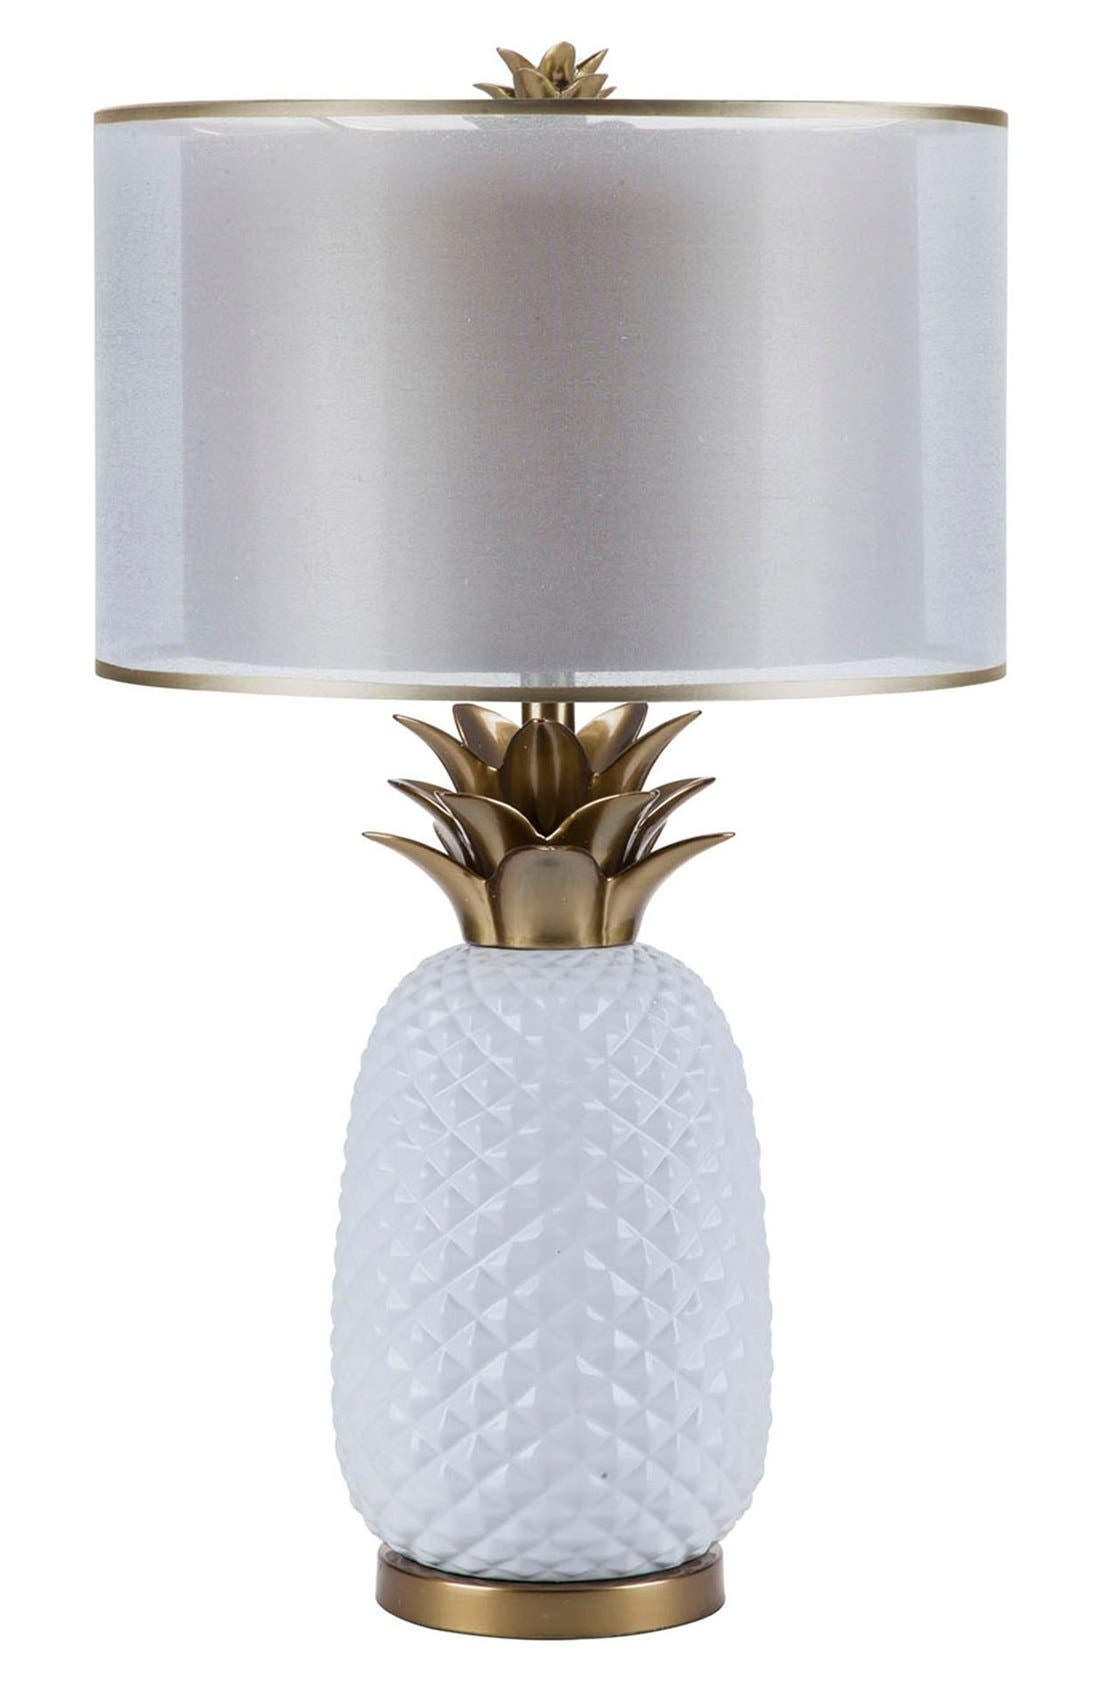 JAlexander Pineapple Lamp